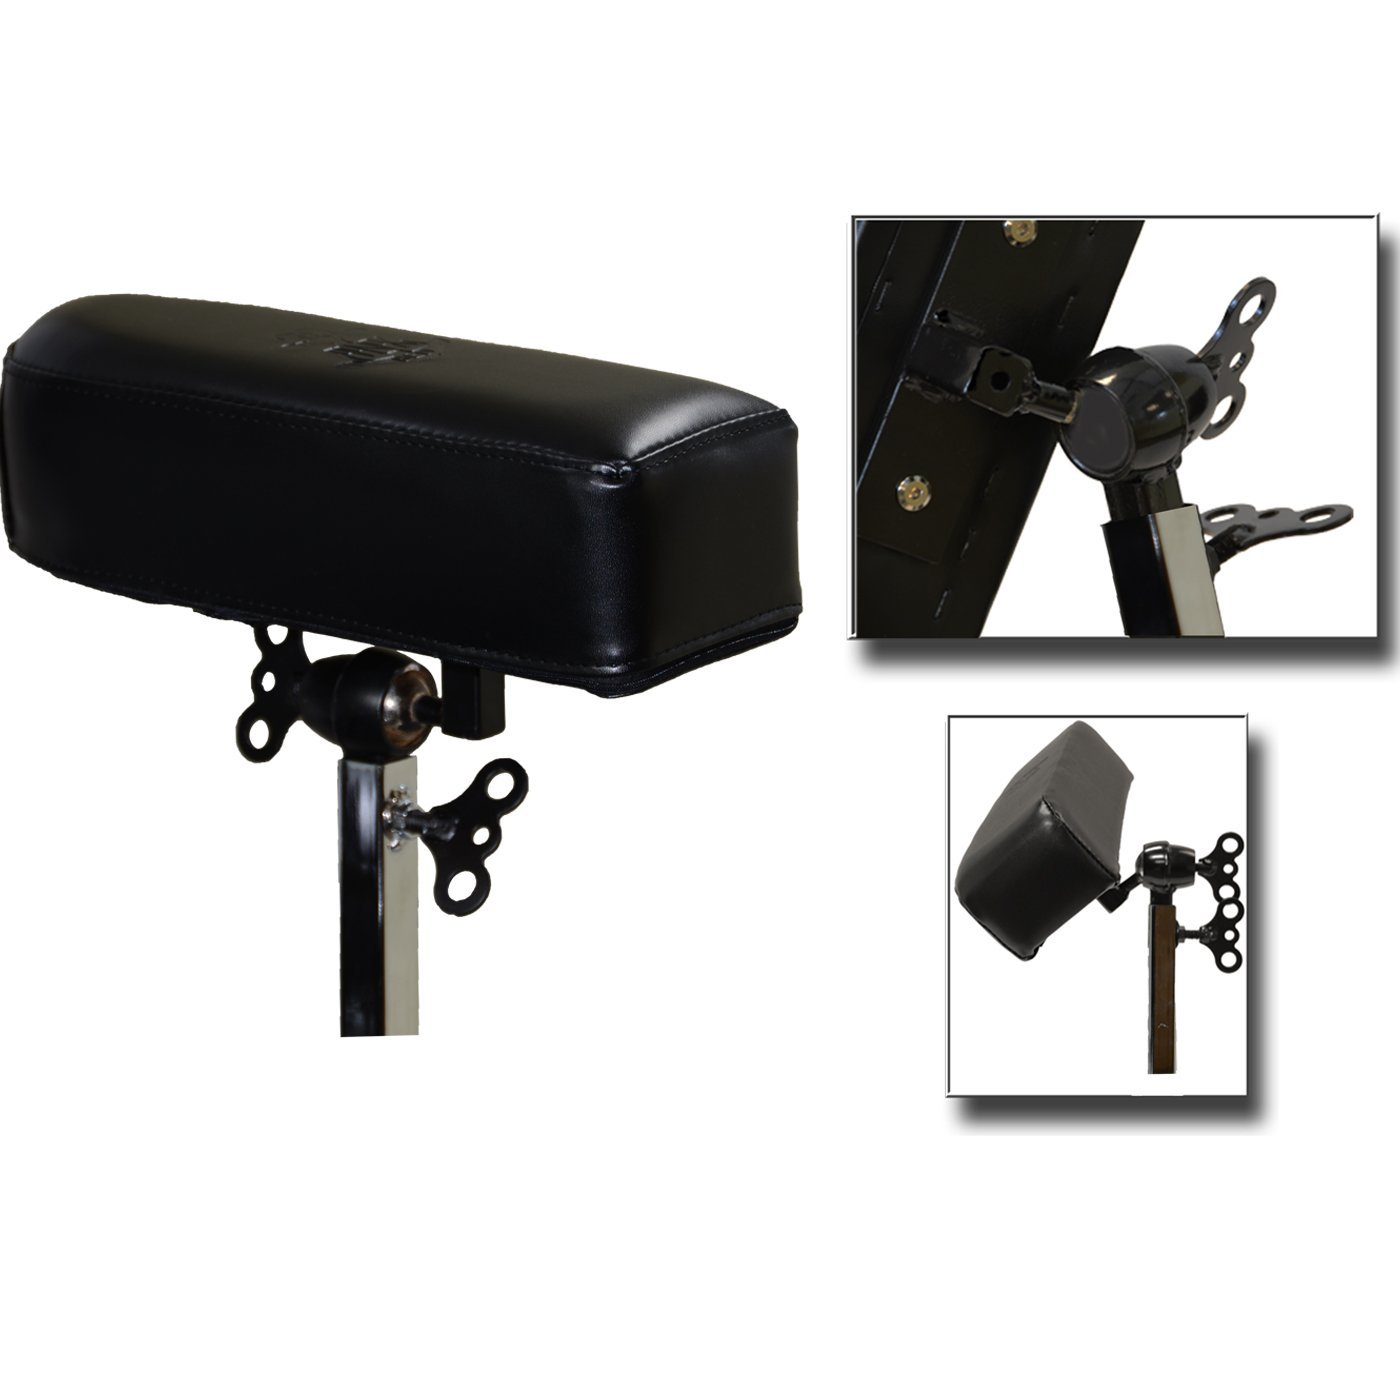 Arm Rest ONLY for InkBed IB-488 Hydraulic Client Tattoo Massage Bed Table Studio Equipment (for NEW IB-488 ONLY)